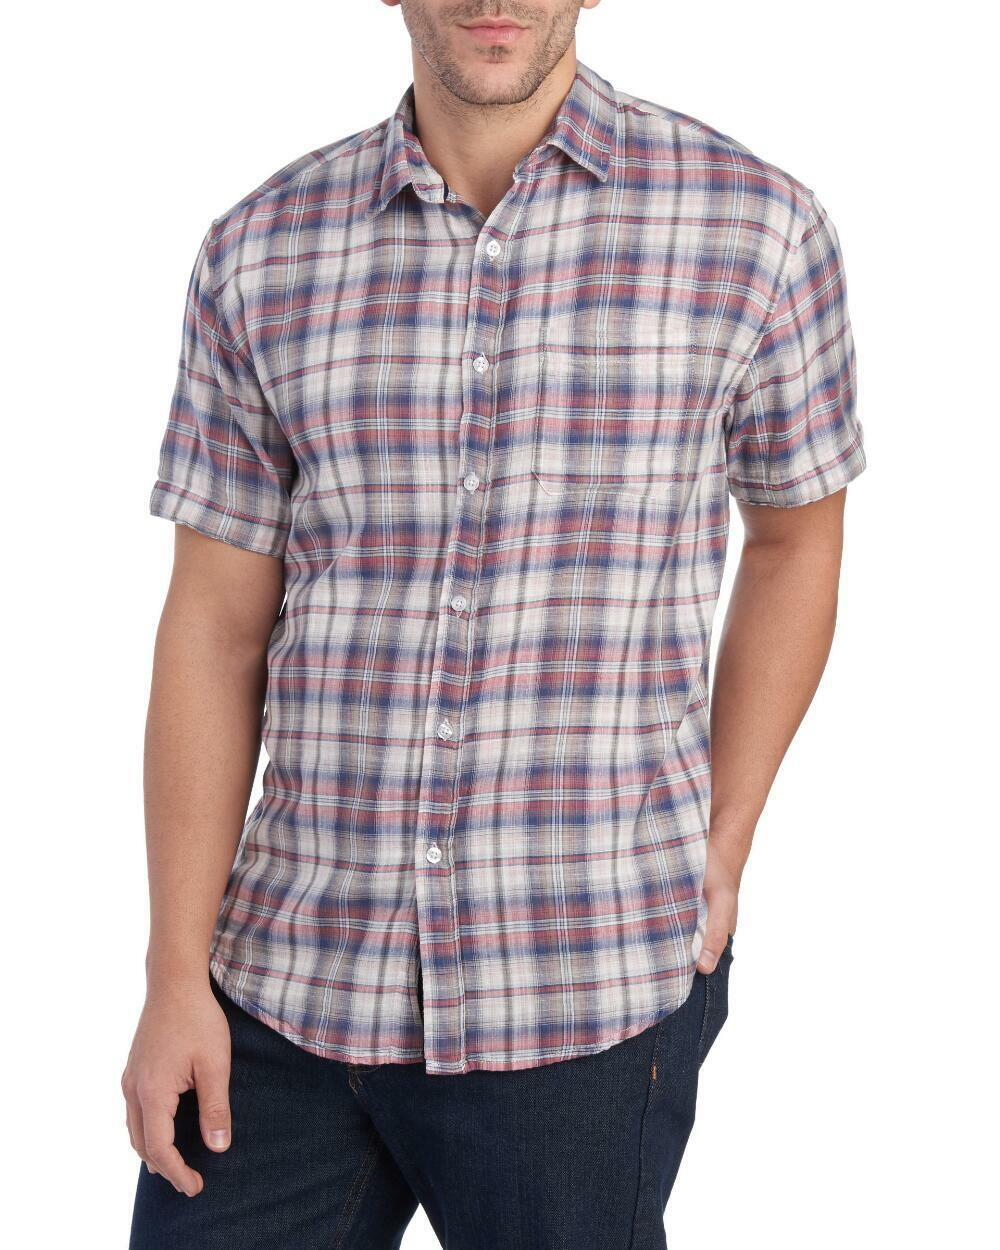 87d70658792 Clearwater Outfitters - Mens L - NWT - Navy bluee Plaid Double Faced Madras  Shirt